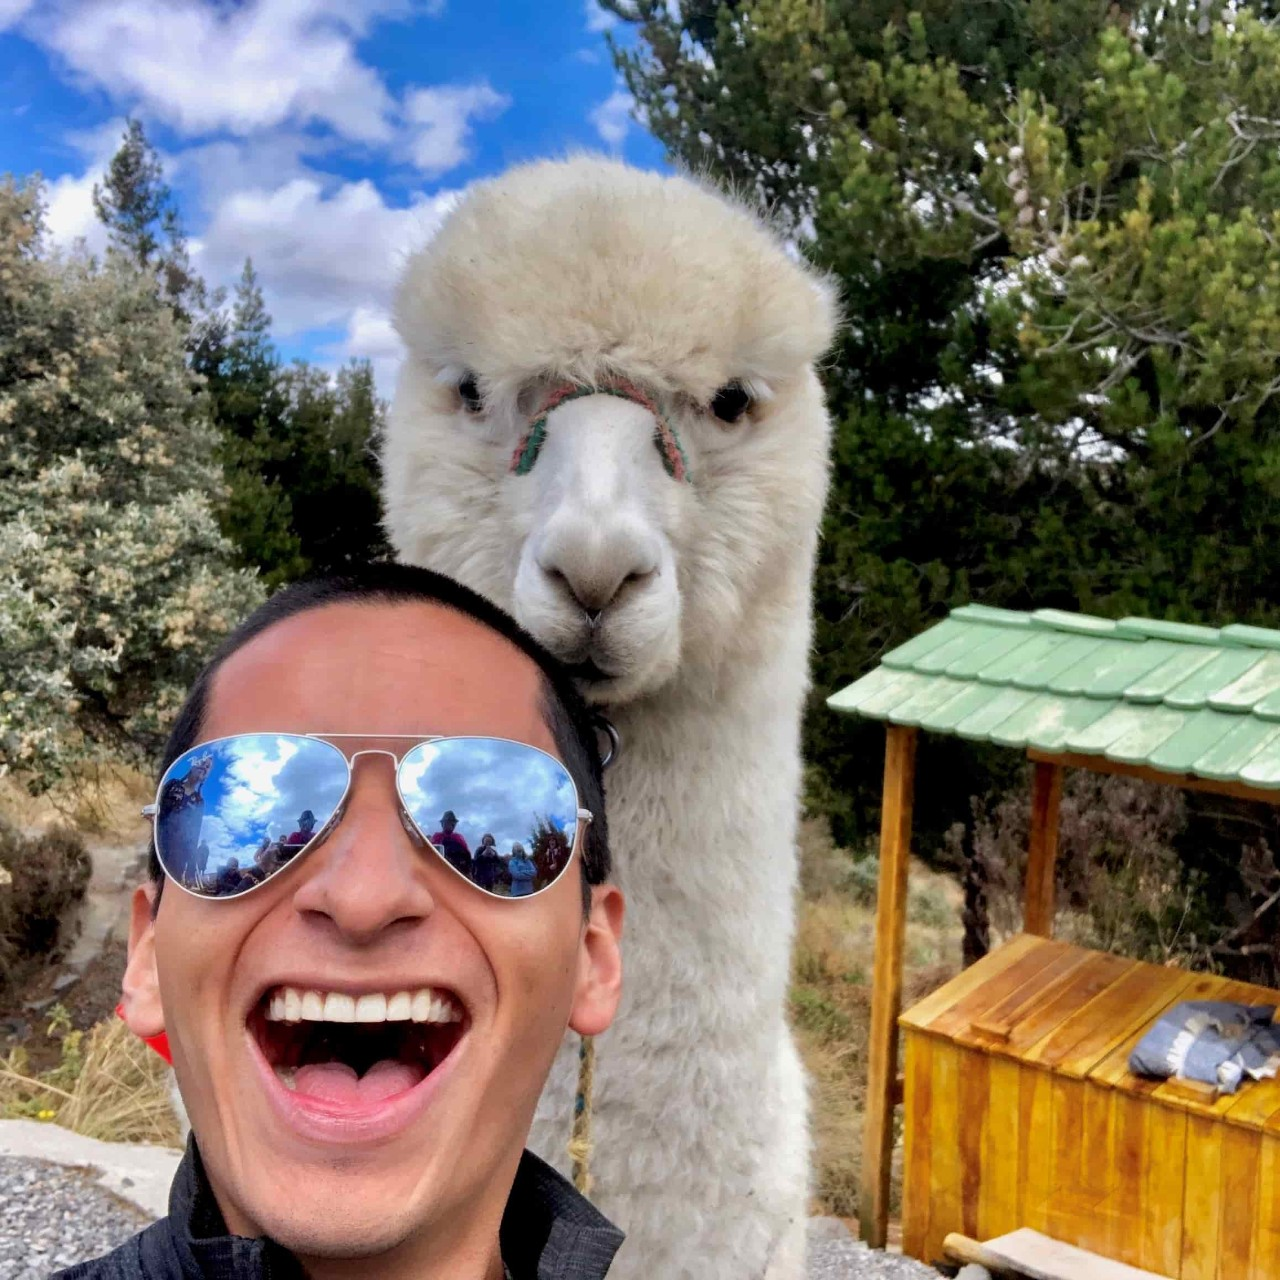 John Gehman '21 poses with an Alpaca while hiking the Quilotoa Volcano and Lagoon just south of Quito, Ecuador in September 2019.